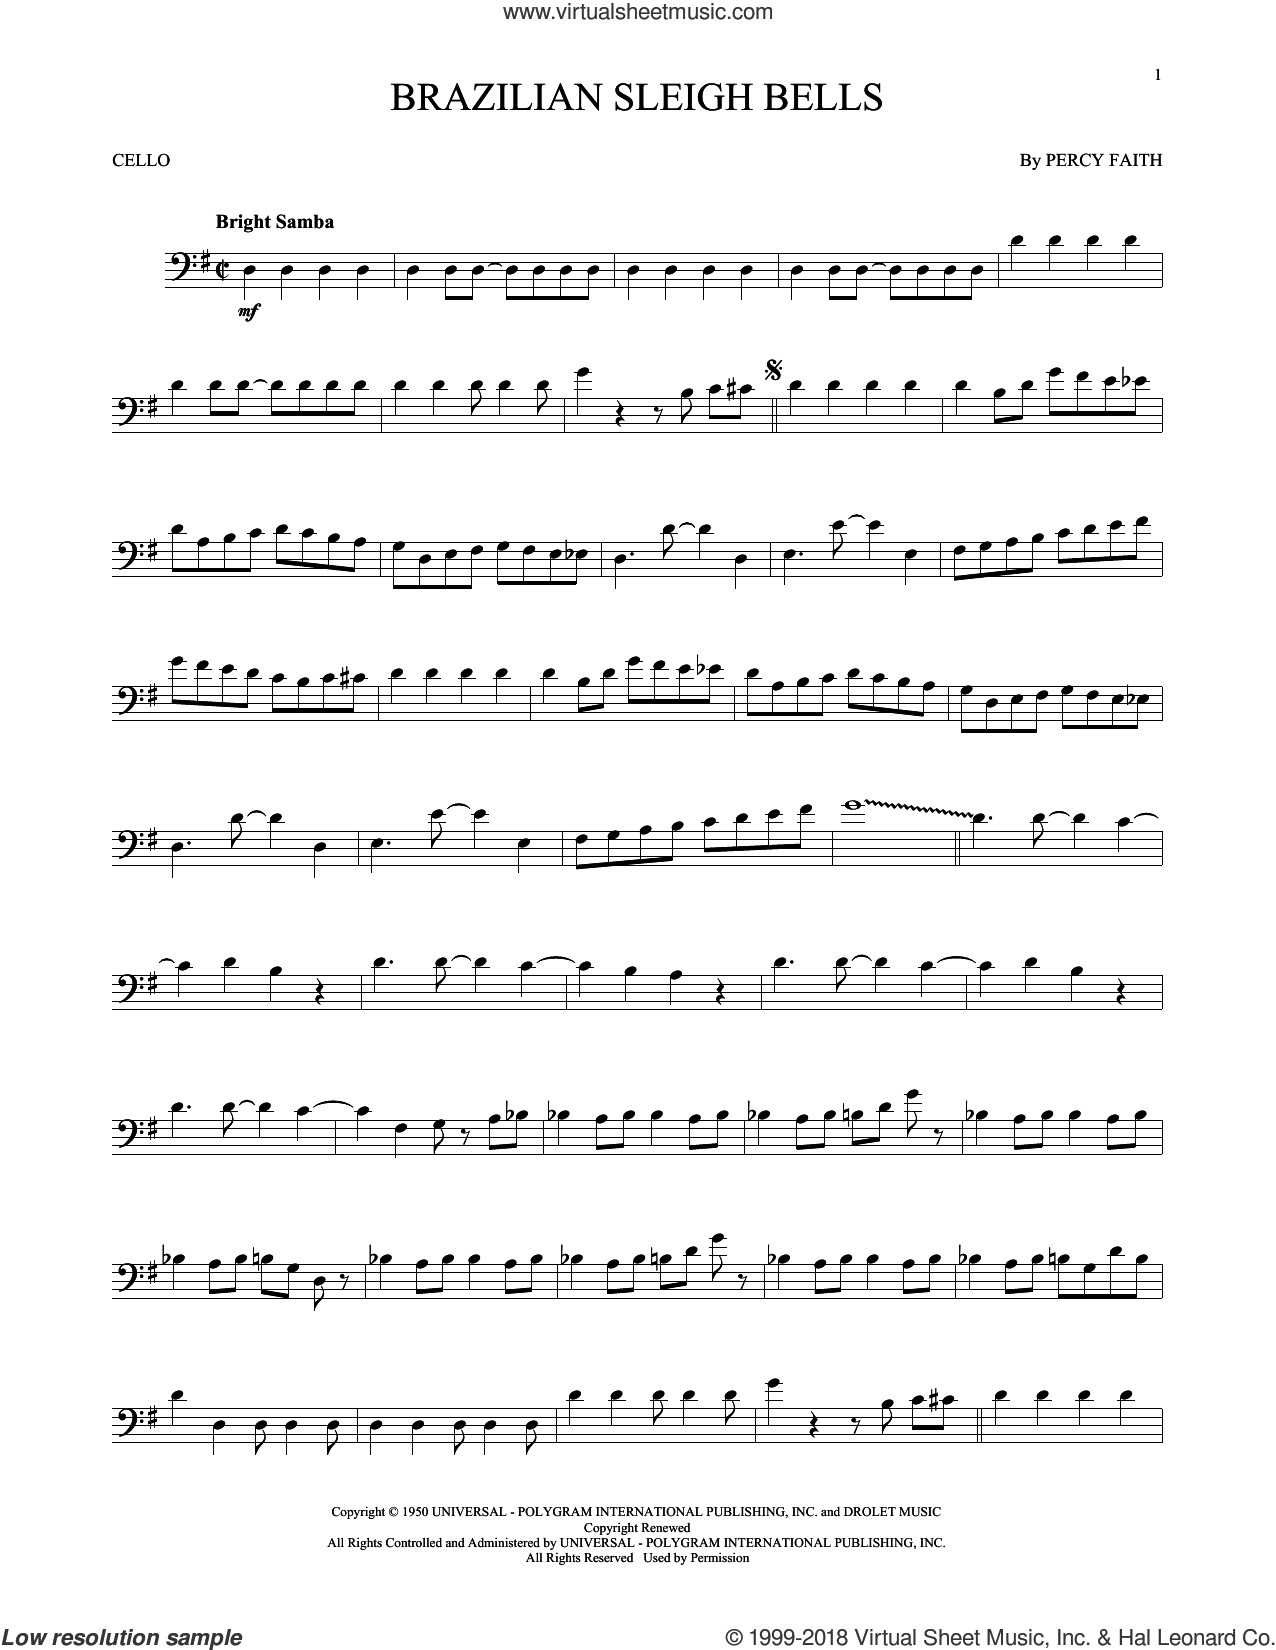 Brazilian Sleigh Bells sheet music for cello solo by Percy Faith, intermediate skill level